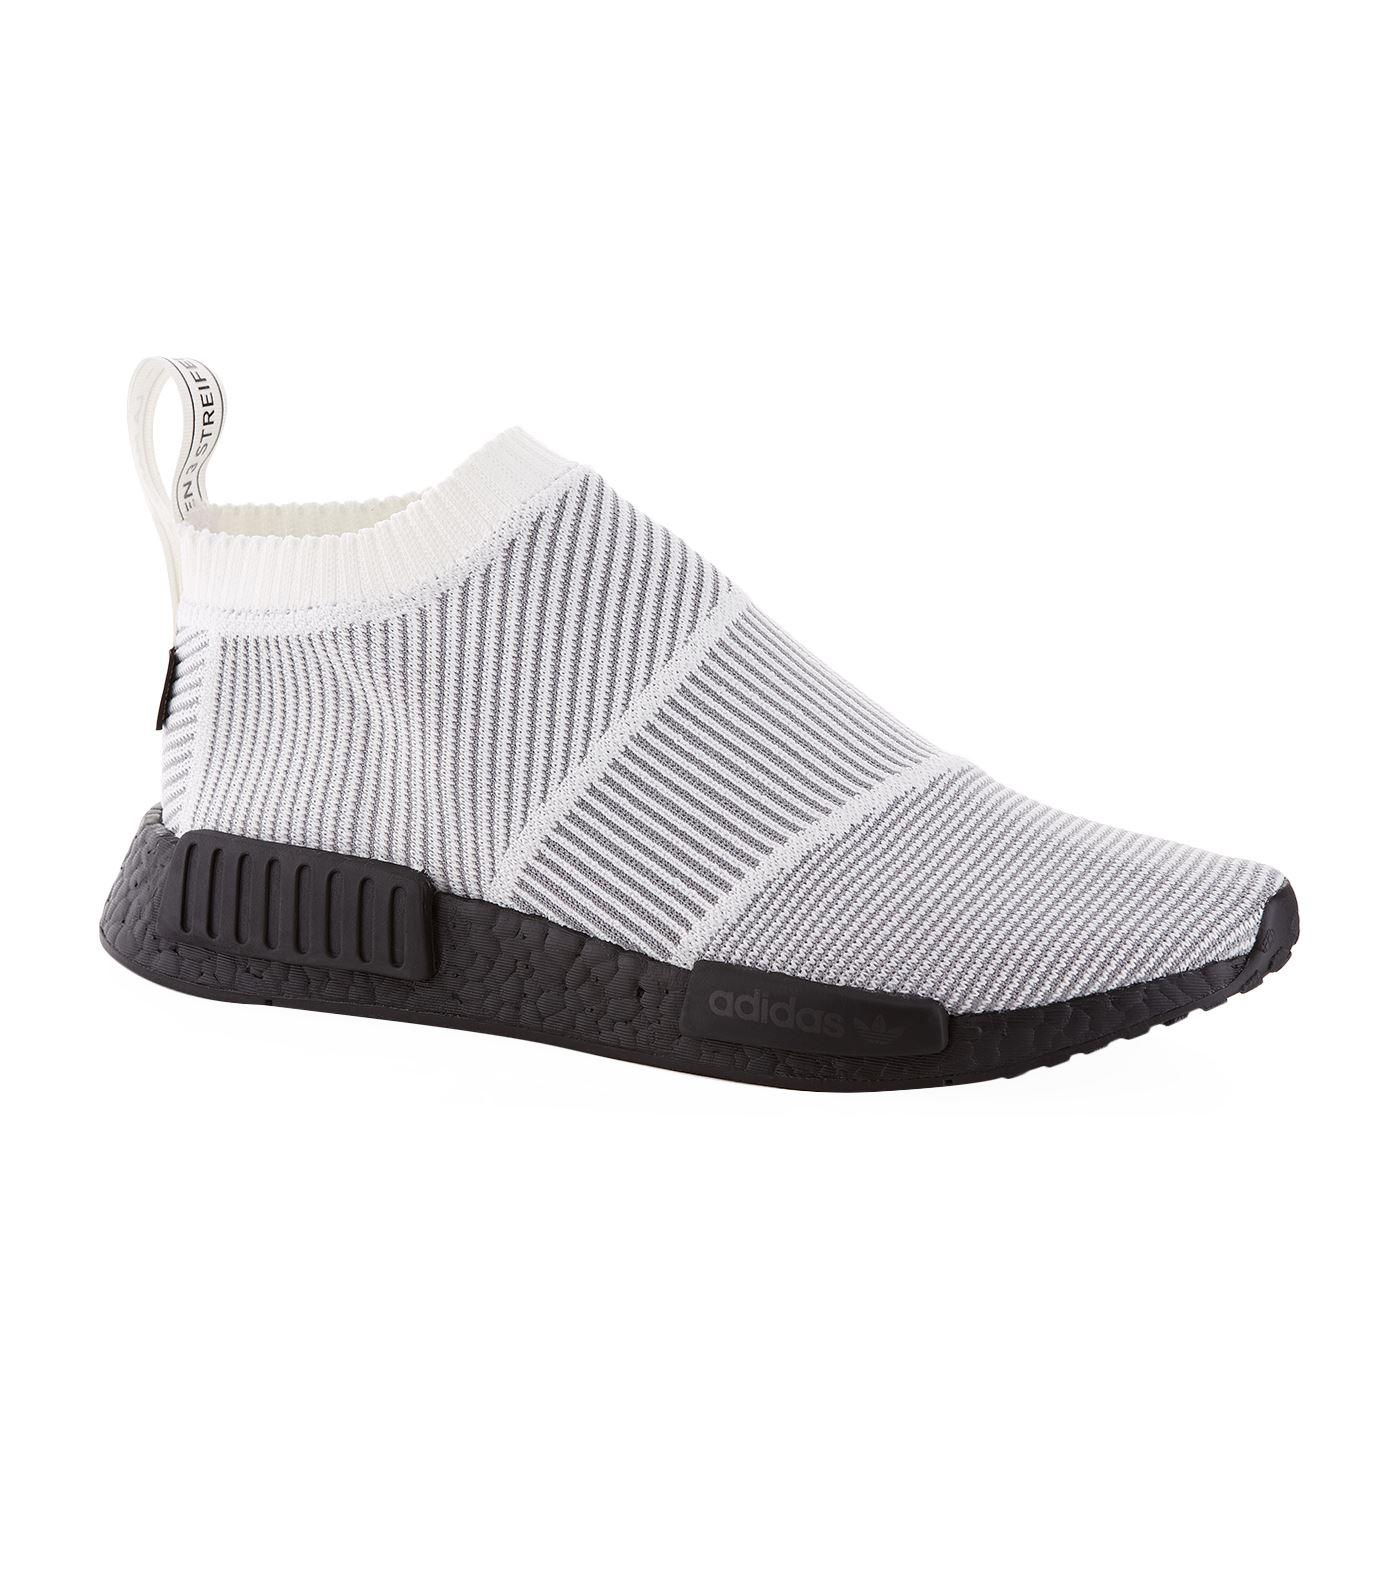 best website cc367 c7c9e adidas Originals Nmd Cs1 Gtx Primeknit Trainers in White for Men - Lyst